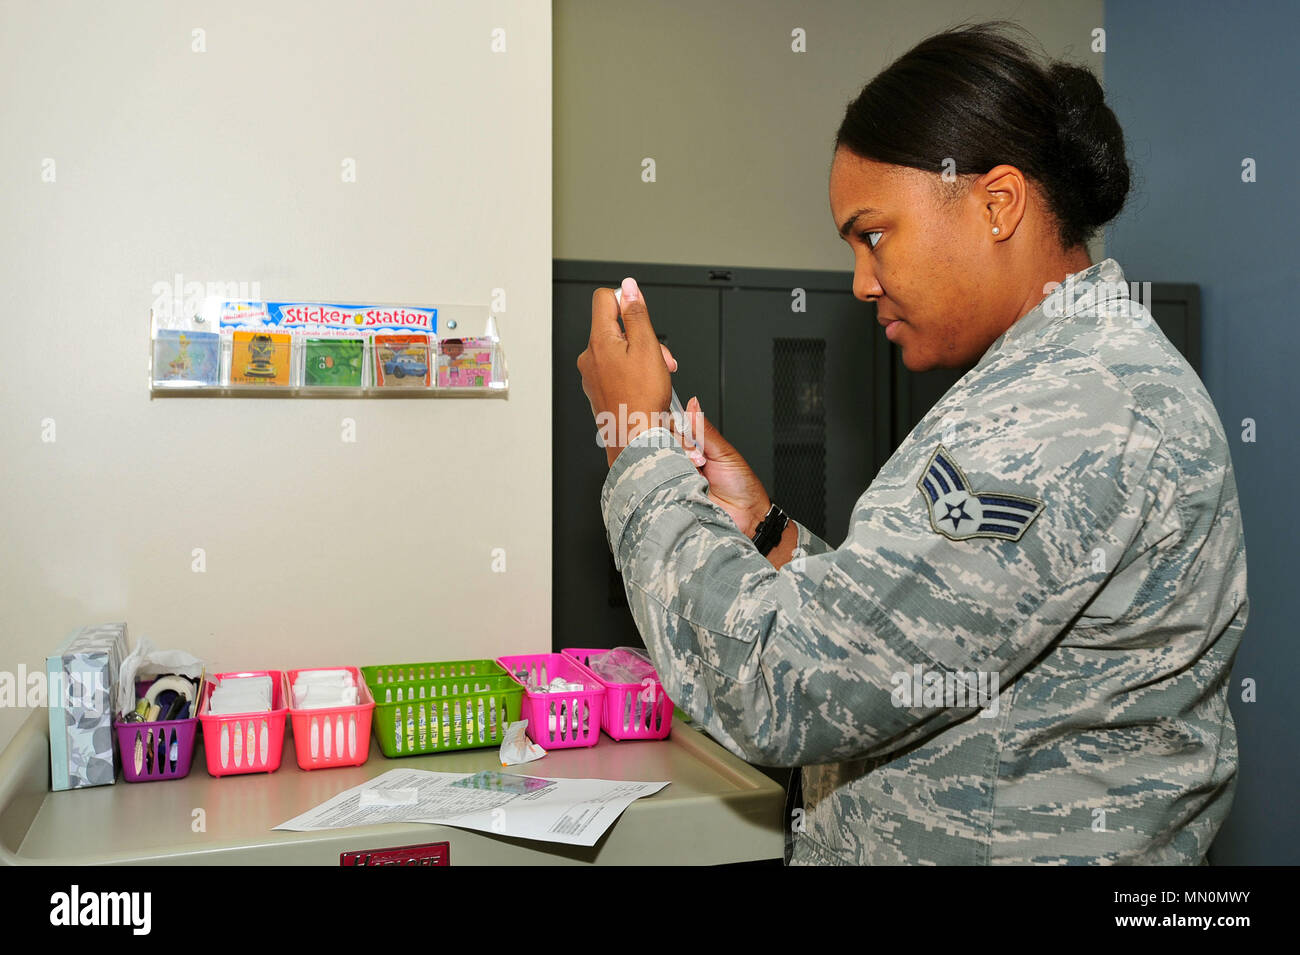 U.S. Air Force Senior Airman Tamika Bradley, 20th Medical Operations Squadron allergy and immunizations technician, prepares a pneumococcal vaccine for a patient at Shaw Air Force Base, S.C., Aug. 8, 2017. The vaccine is effective against 23 types of pneumococcal bacteria, reducing the likelihood of infections such as pneumonia. (U.S. Air Force photo by Airman 1st Class Kathryn R.C. Reaves) - Stock Image